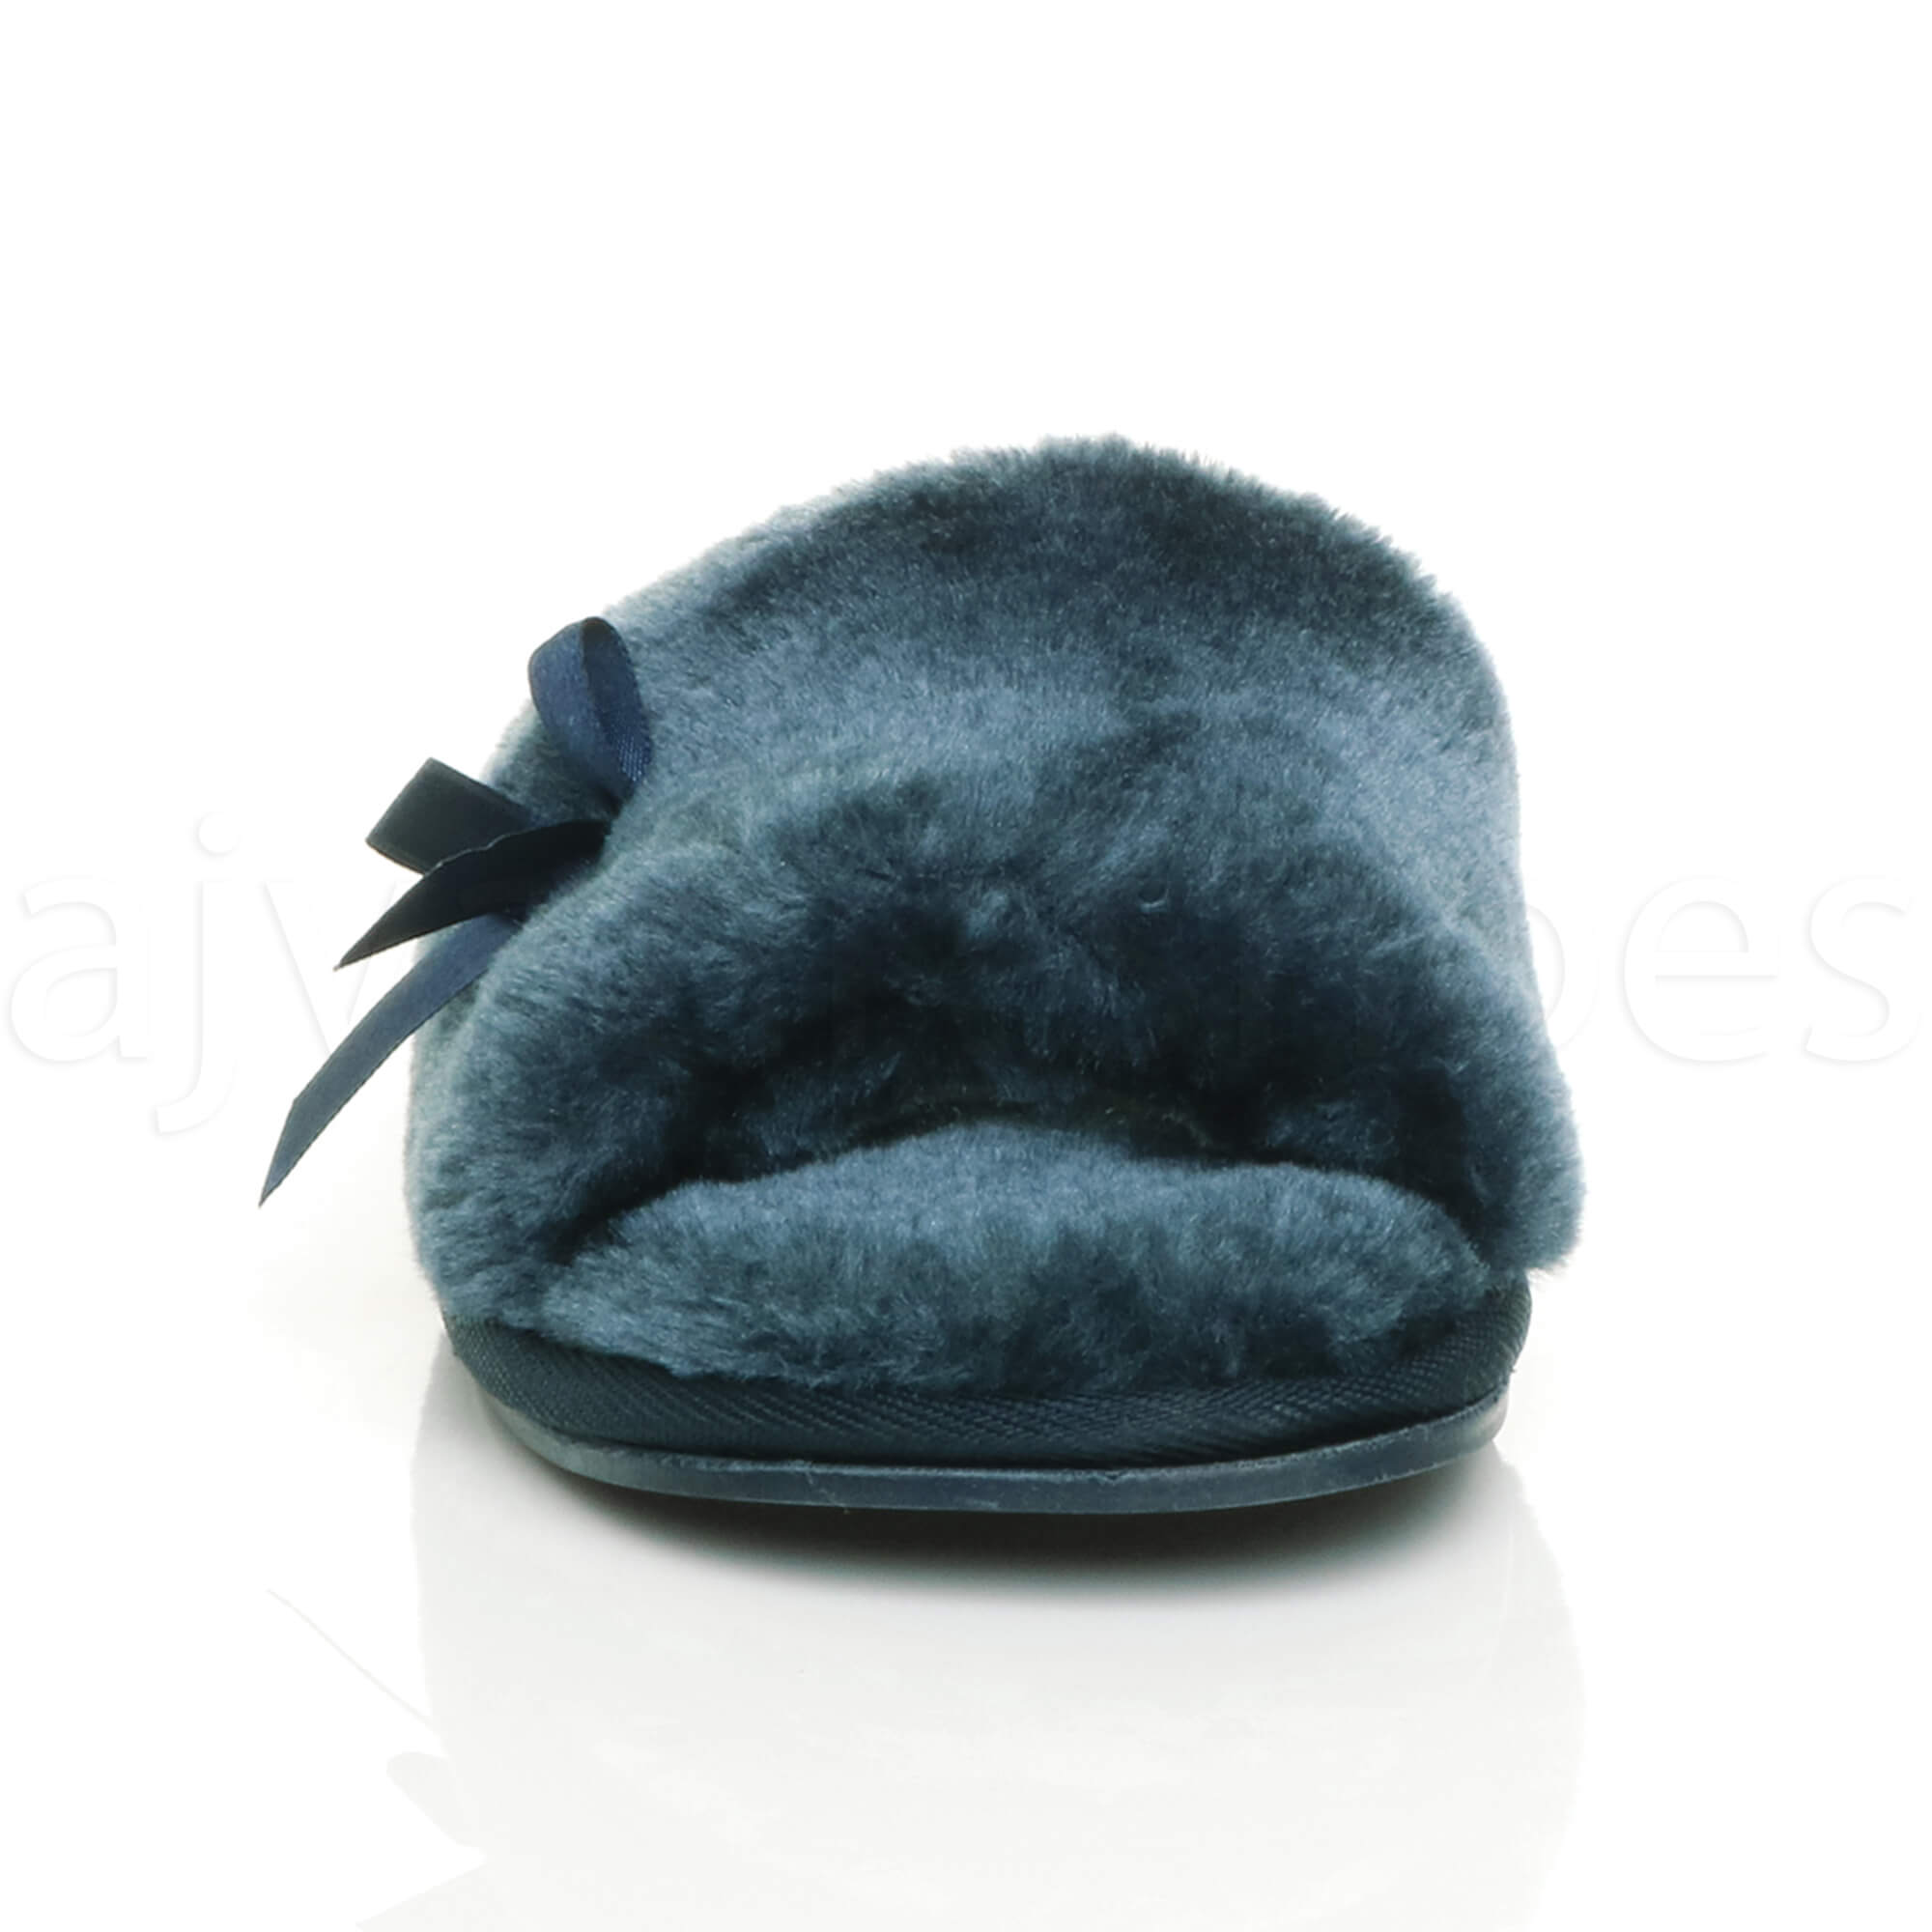 WOMENS-LADIES-FLAT-PEEP-TOE-BOW-LUXURY-COSY-FUR-LINED-SLIP-ON-SLIPPERS-SIZE thumbnail 47